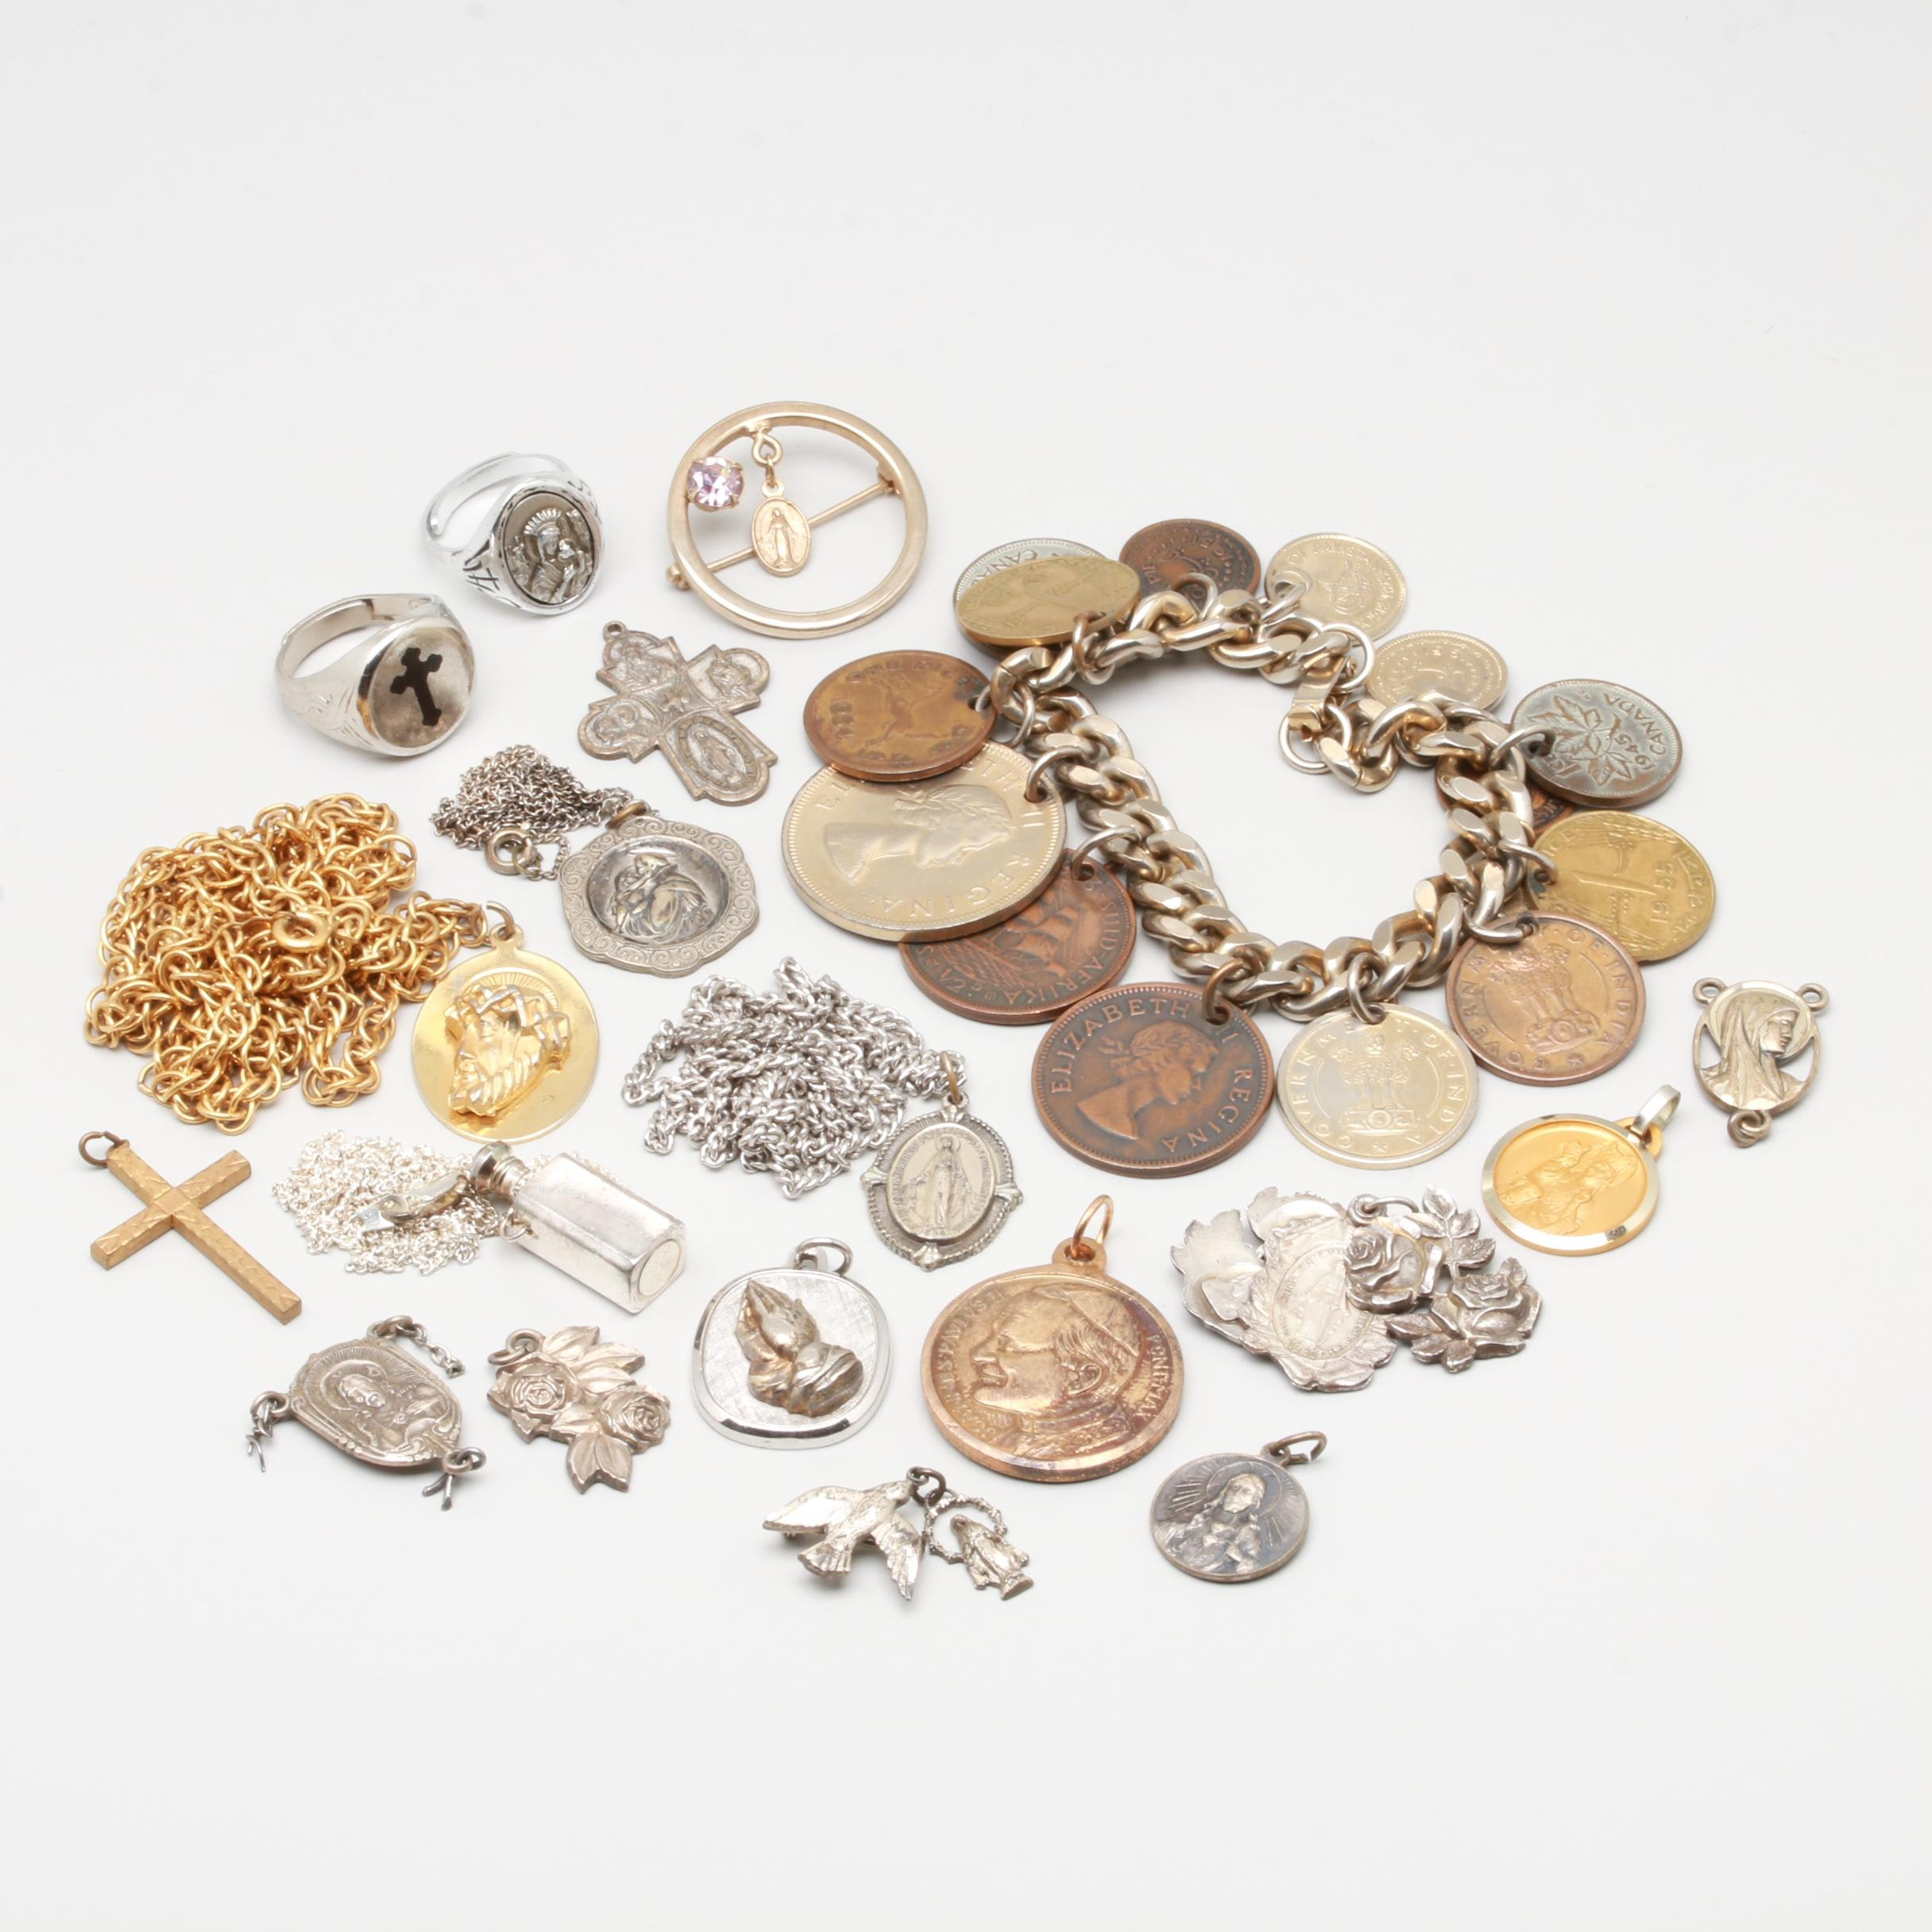 Sterling Silver and Costume Jewelry Featuring Religious Pieces